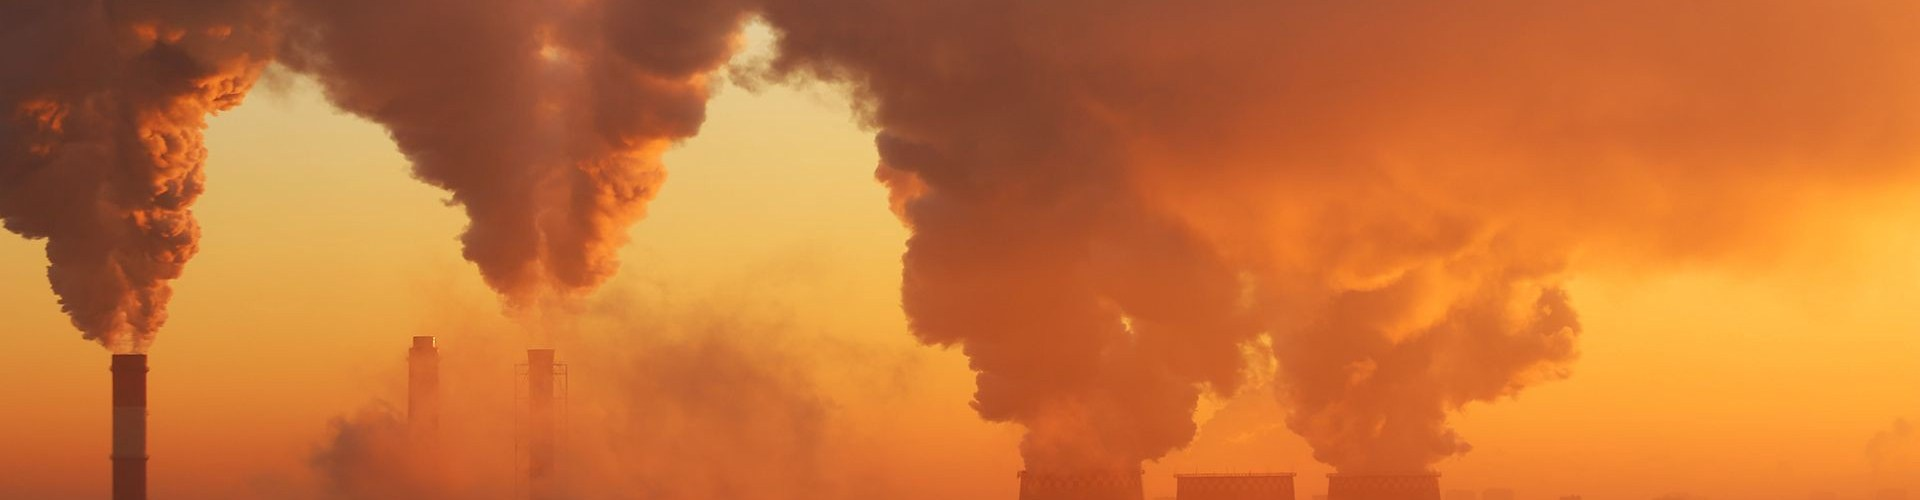 power plant spewing pollution in to sunset sky